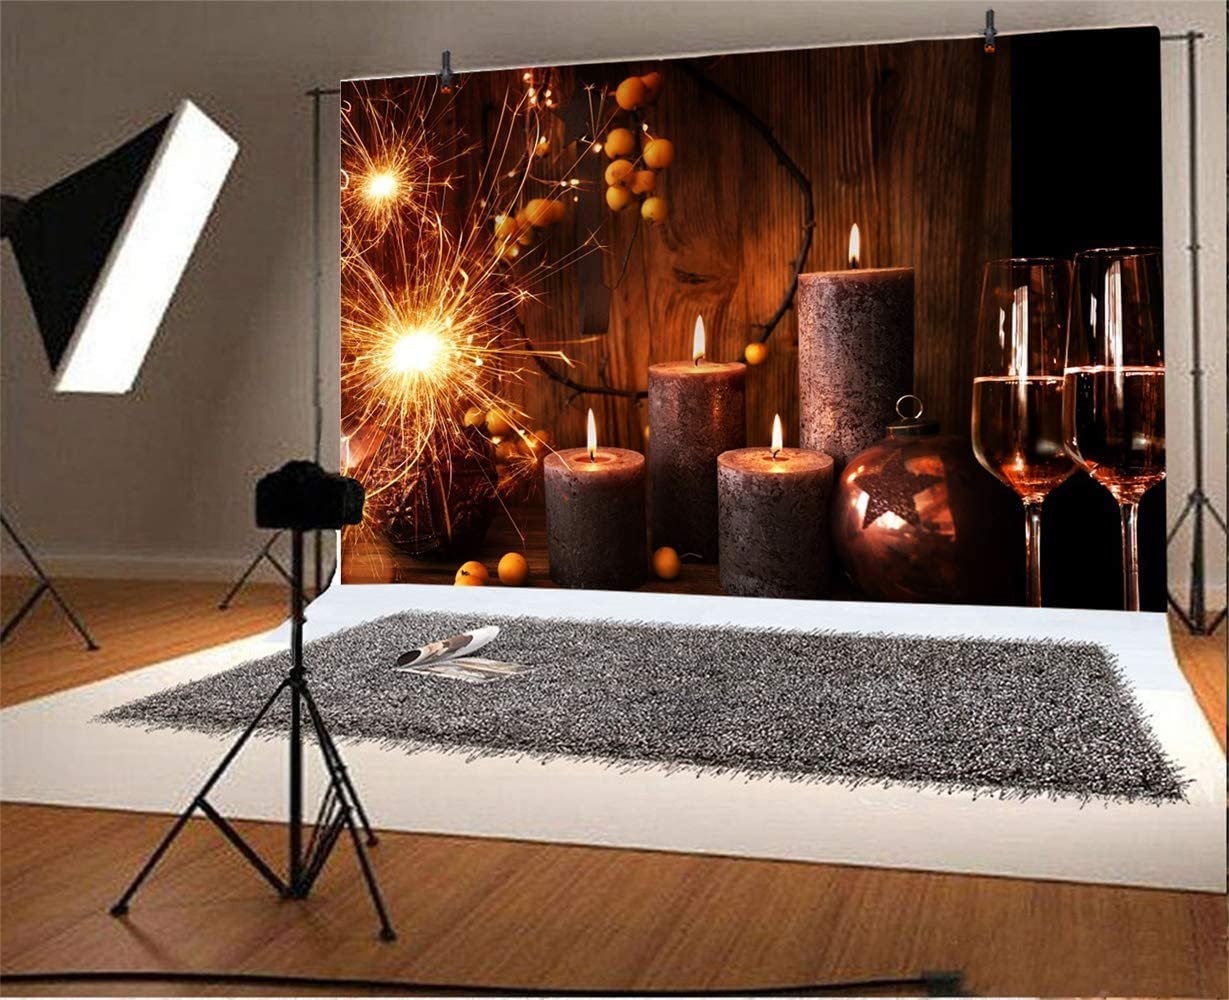 Christmas New Year Backdrop Vinyl 10x7ft Candlelight Dinner Scene Burning Candles Champagne Sparkling Fireworks Ball Decoration Photo Background Xmas Eve New Year Party Banner Greeting Card